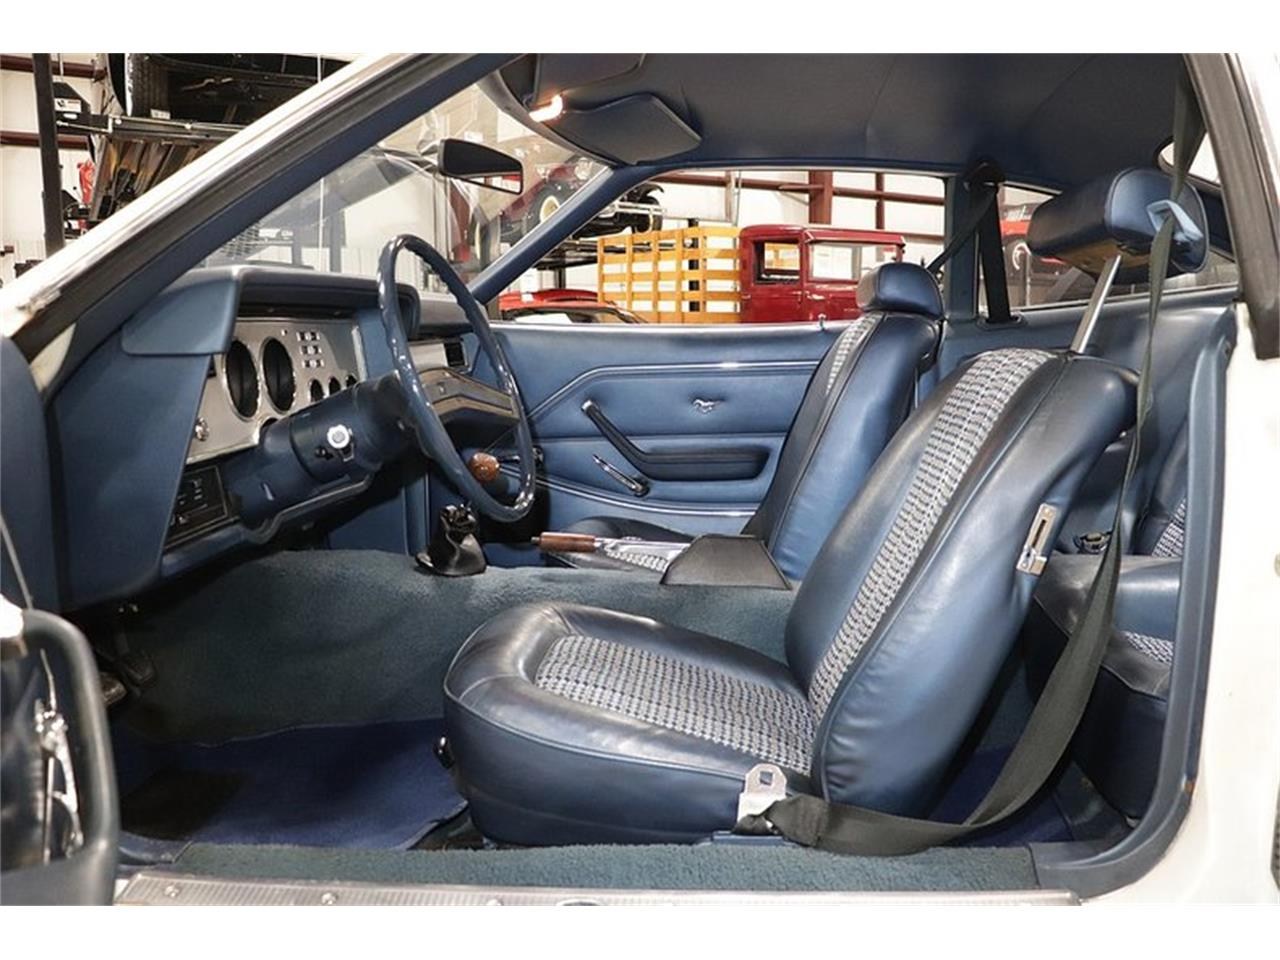 1976 Ford Mustang II Cobra for sale in Kentwood, MI – photo 56